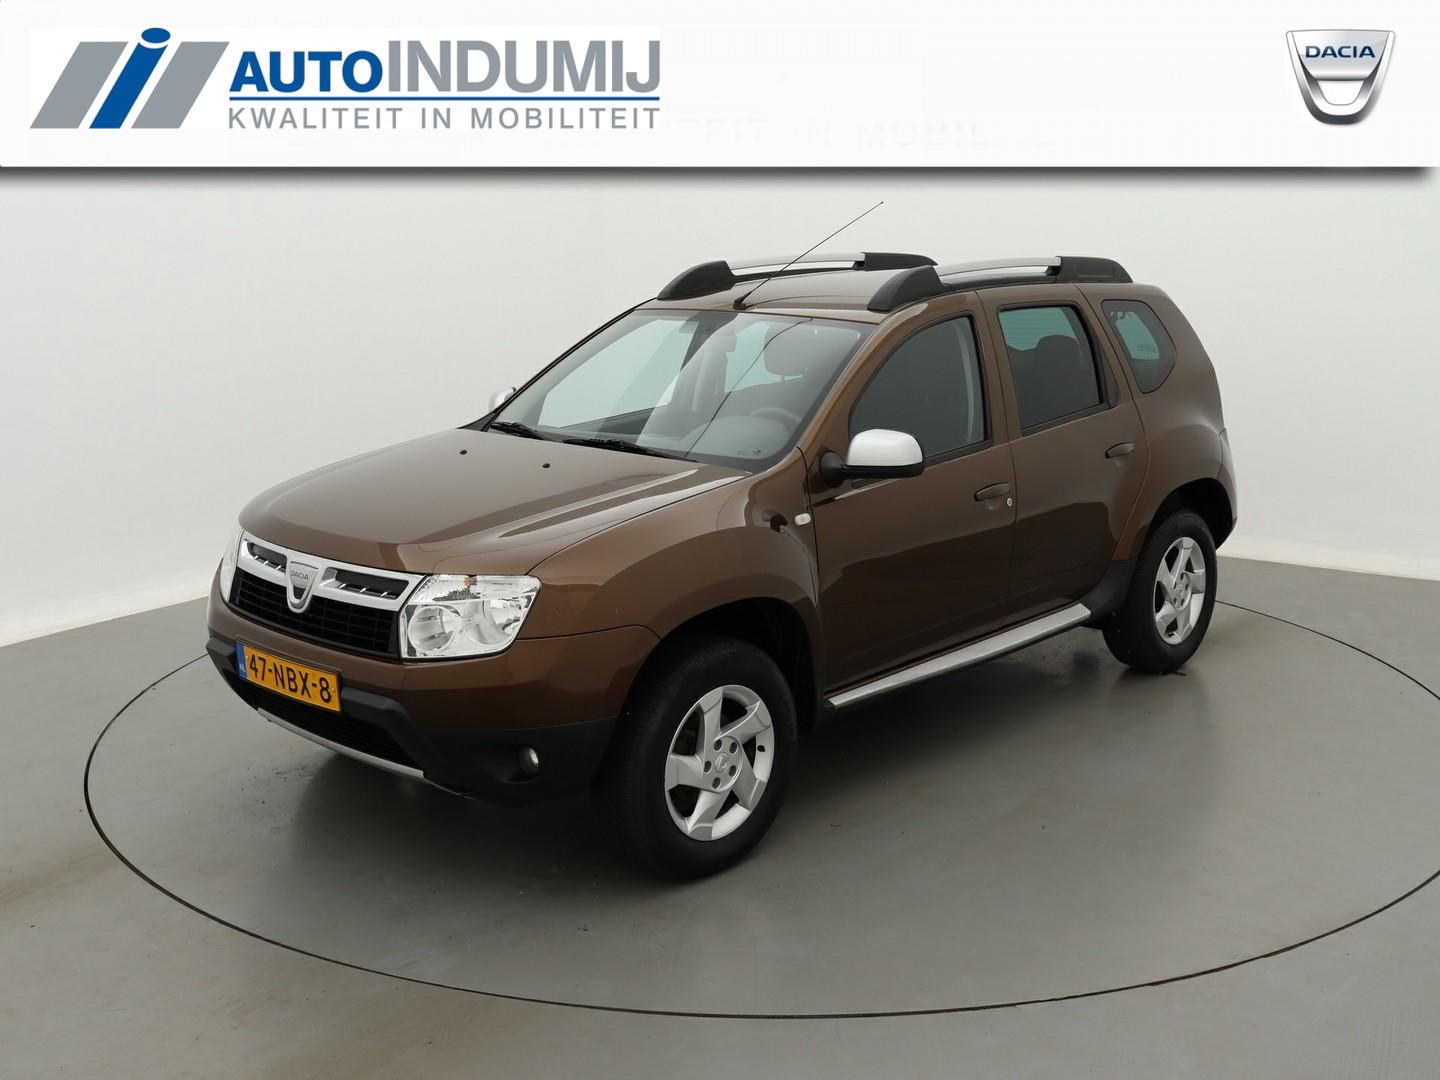 Dacia Duster 1.6 lauréate 2wd + trekhaak / pack look / airco /